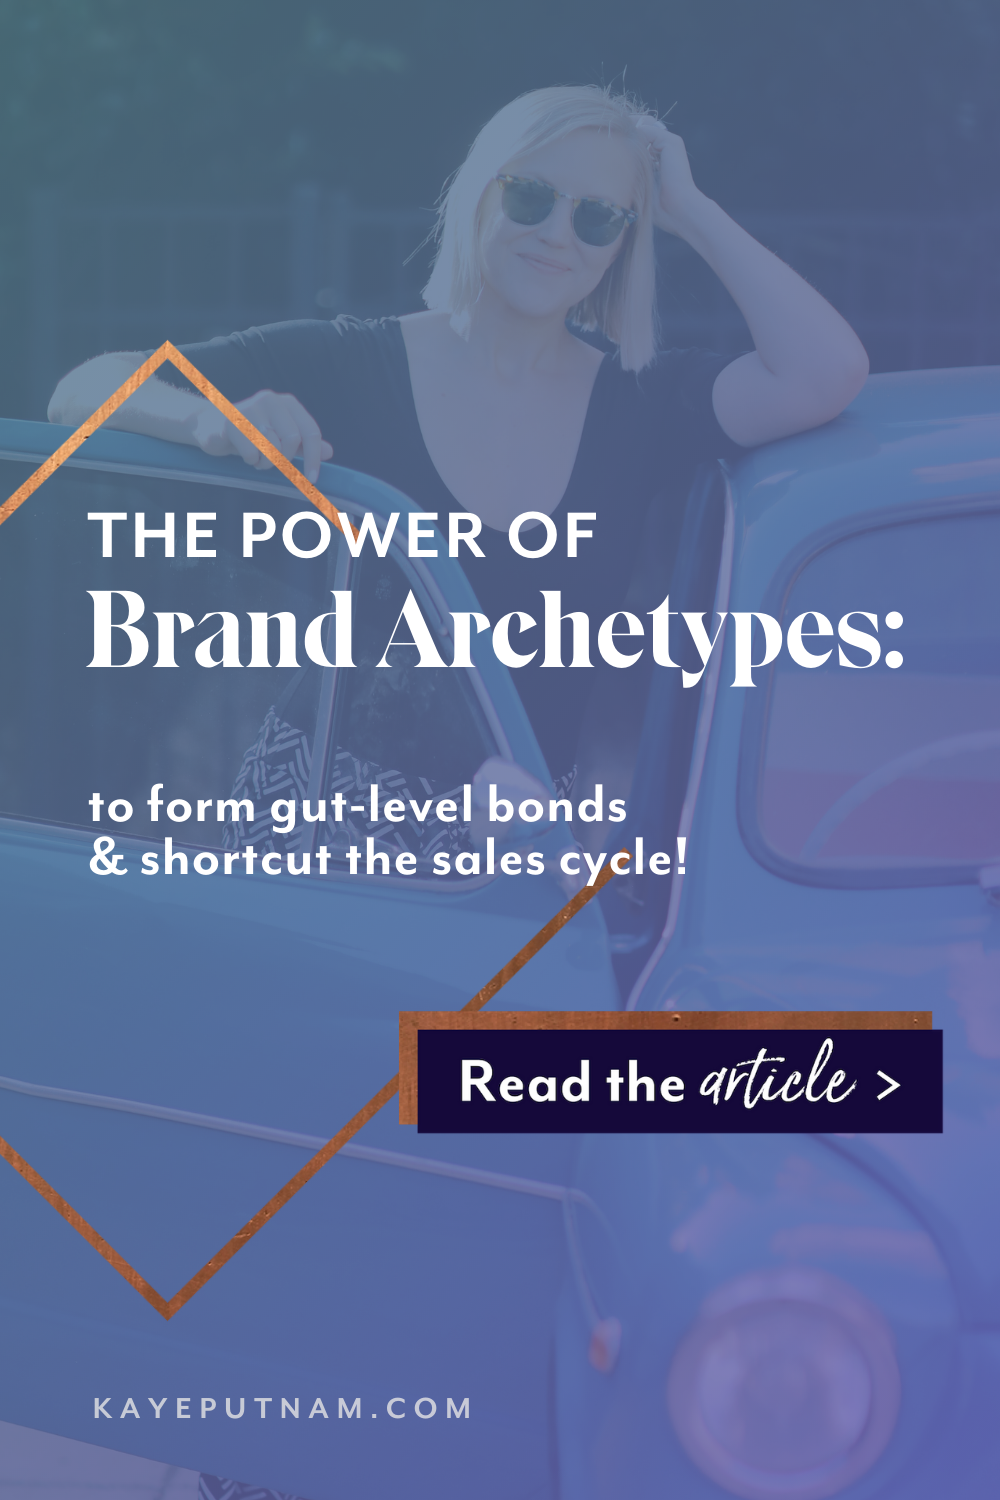 The Power of Brand Archetypes